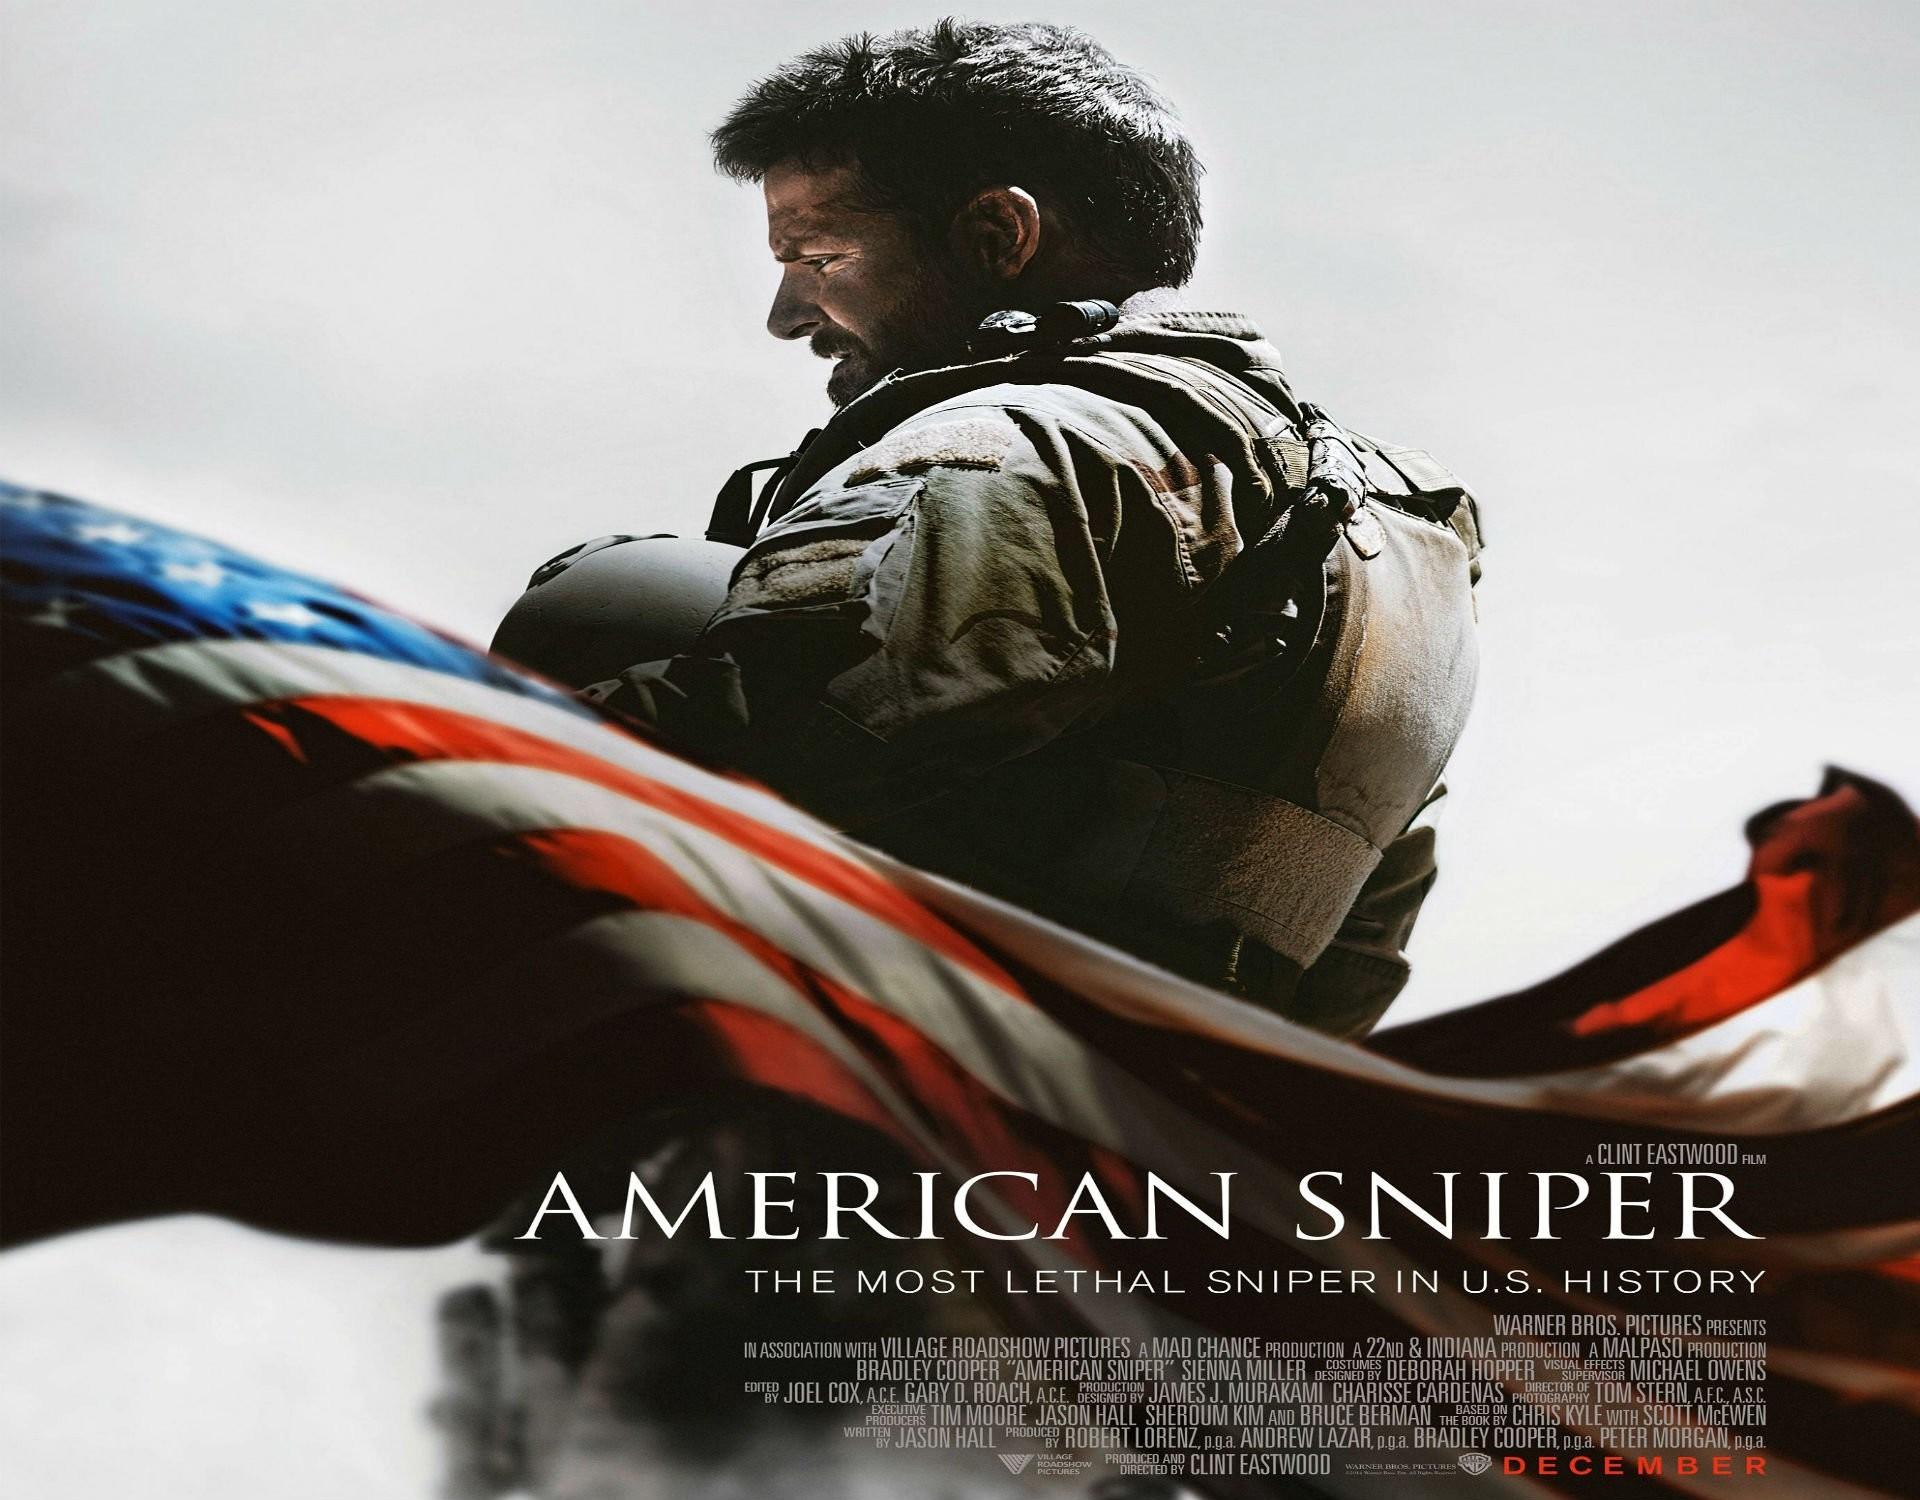 AMERICAN SNIPER biography military war fighting navy seal action clint .